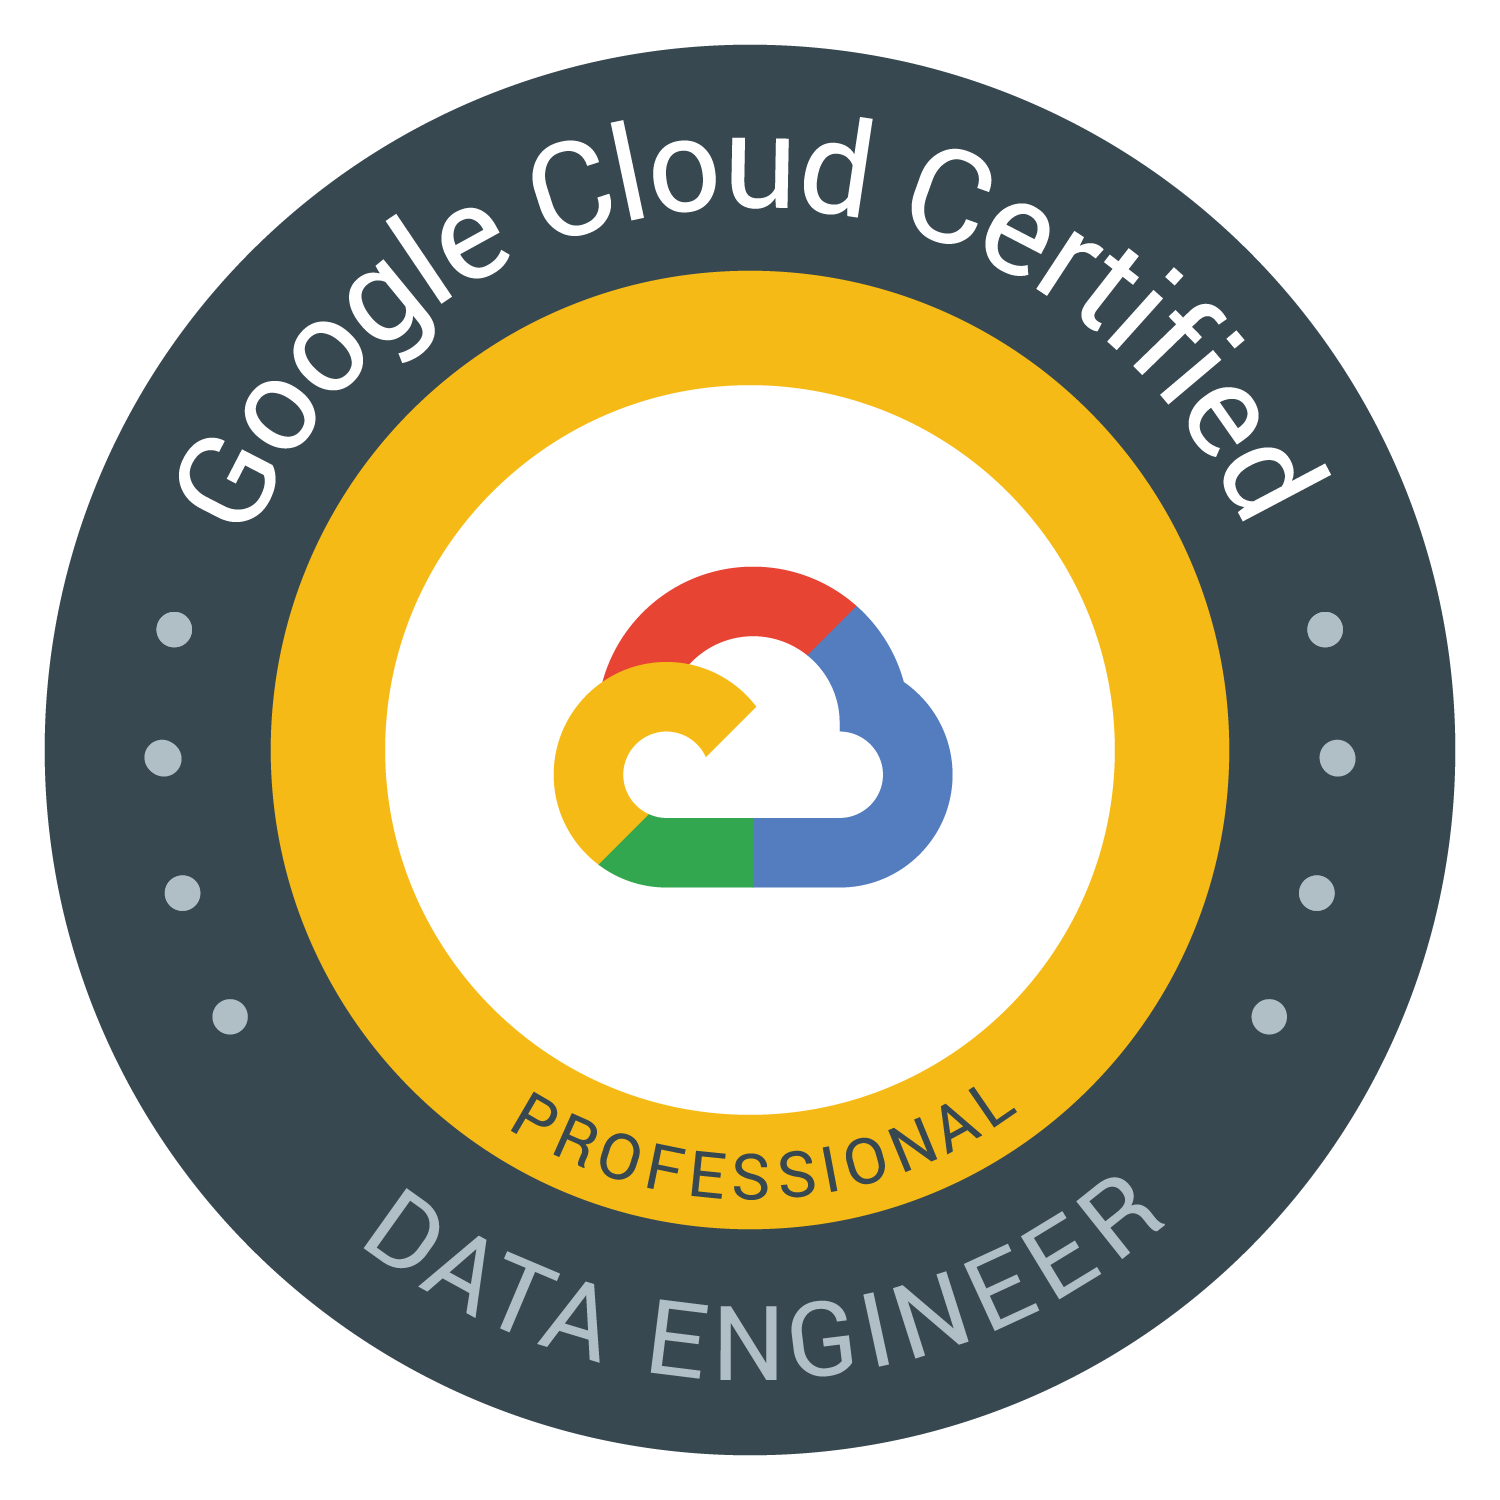 Google Cloud Data Engineer Professional certified! – Blog